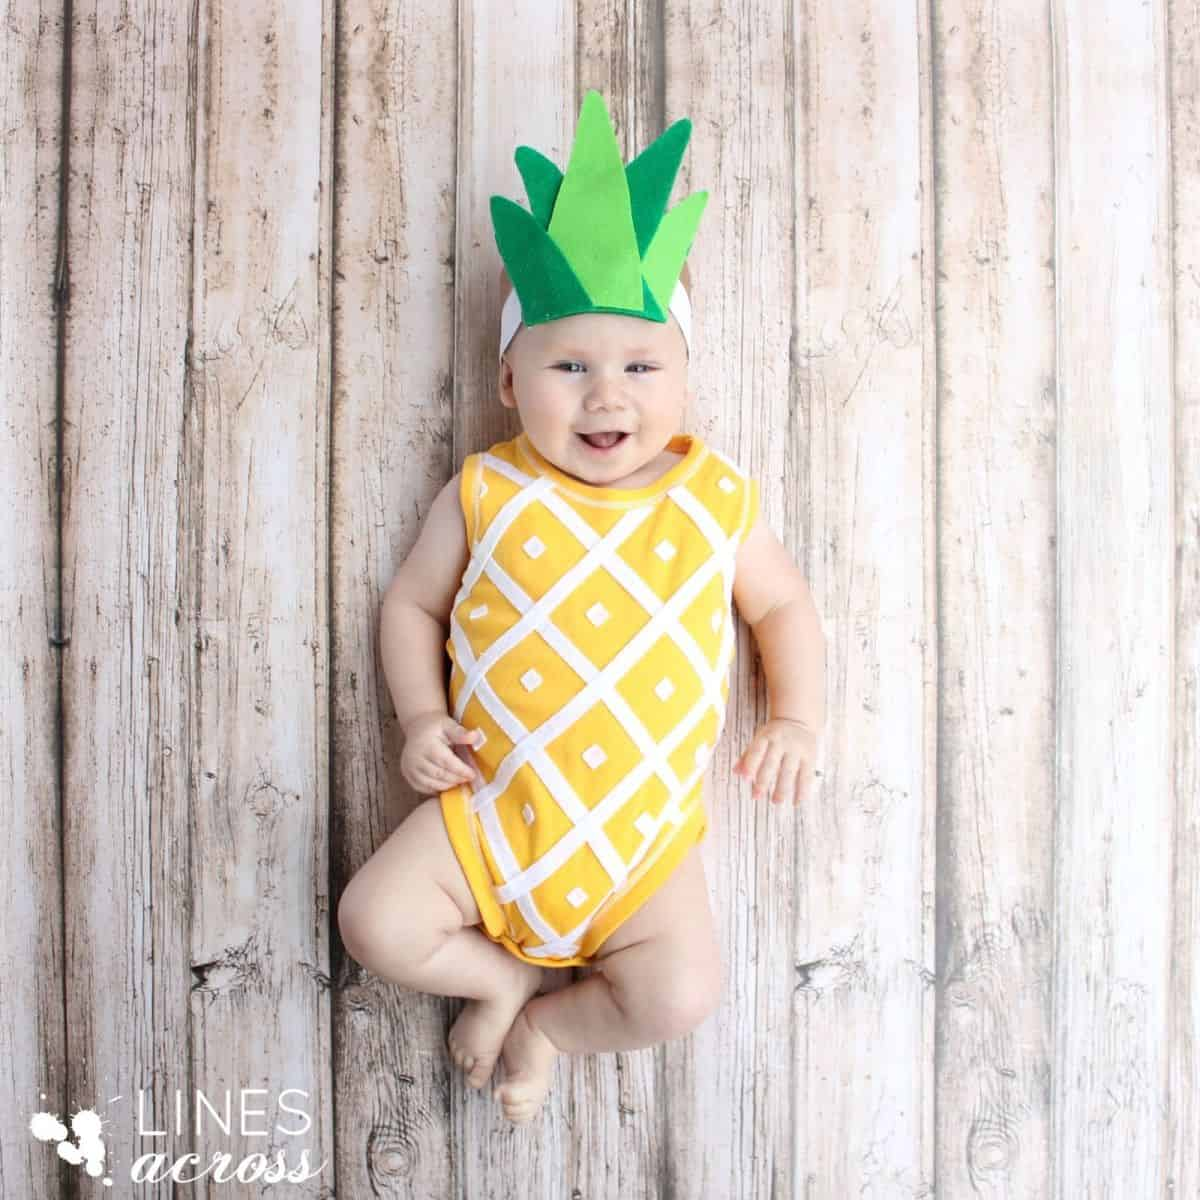 Babys First Halloween Costume Ideas.11 Awesome Diy Costumes For Baby S First Halloween